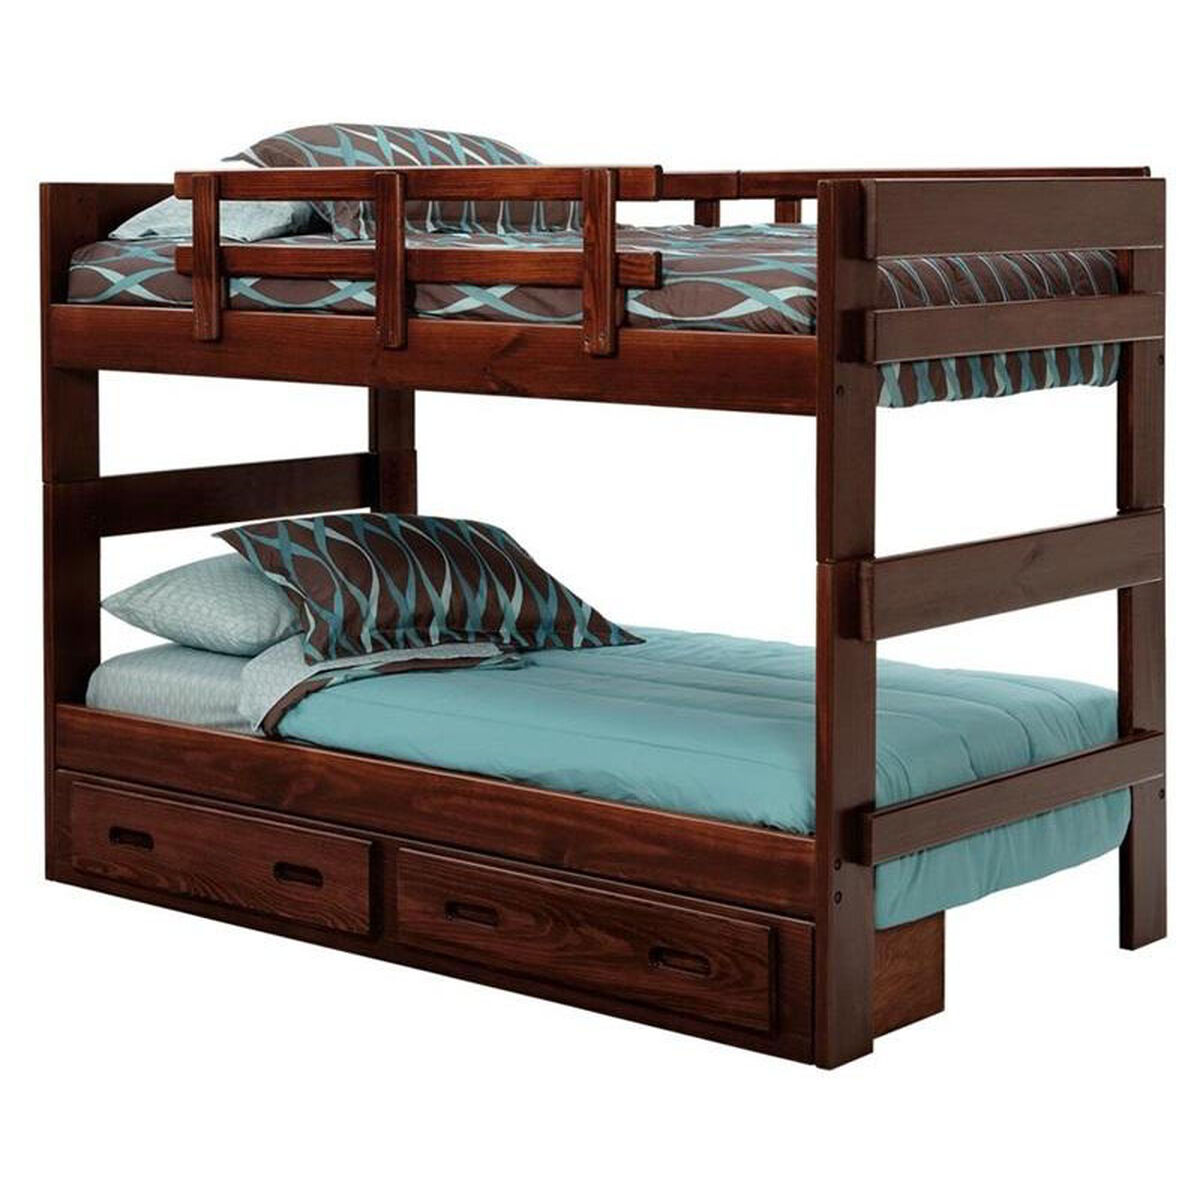 Chelsea home furniture rustic style solid pine stacking for Home furnishing sites